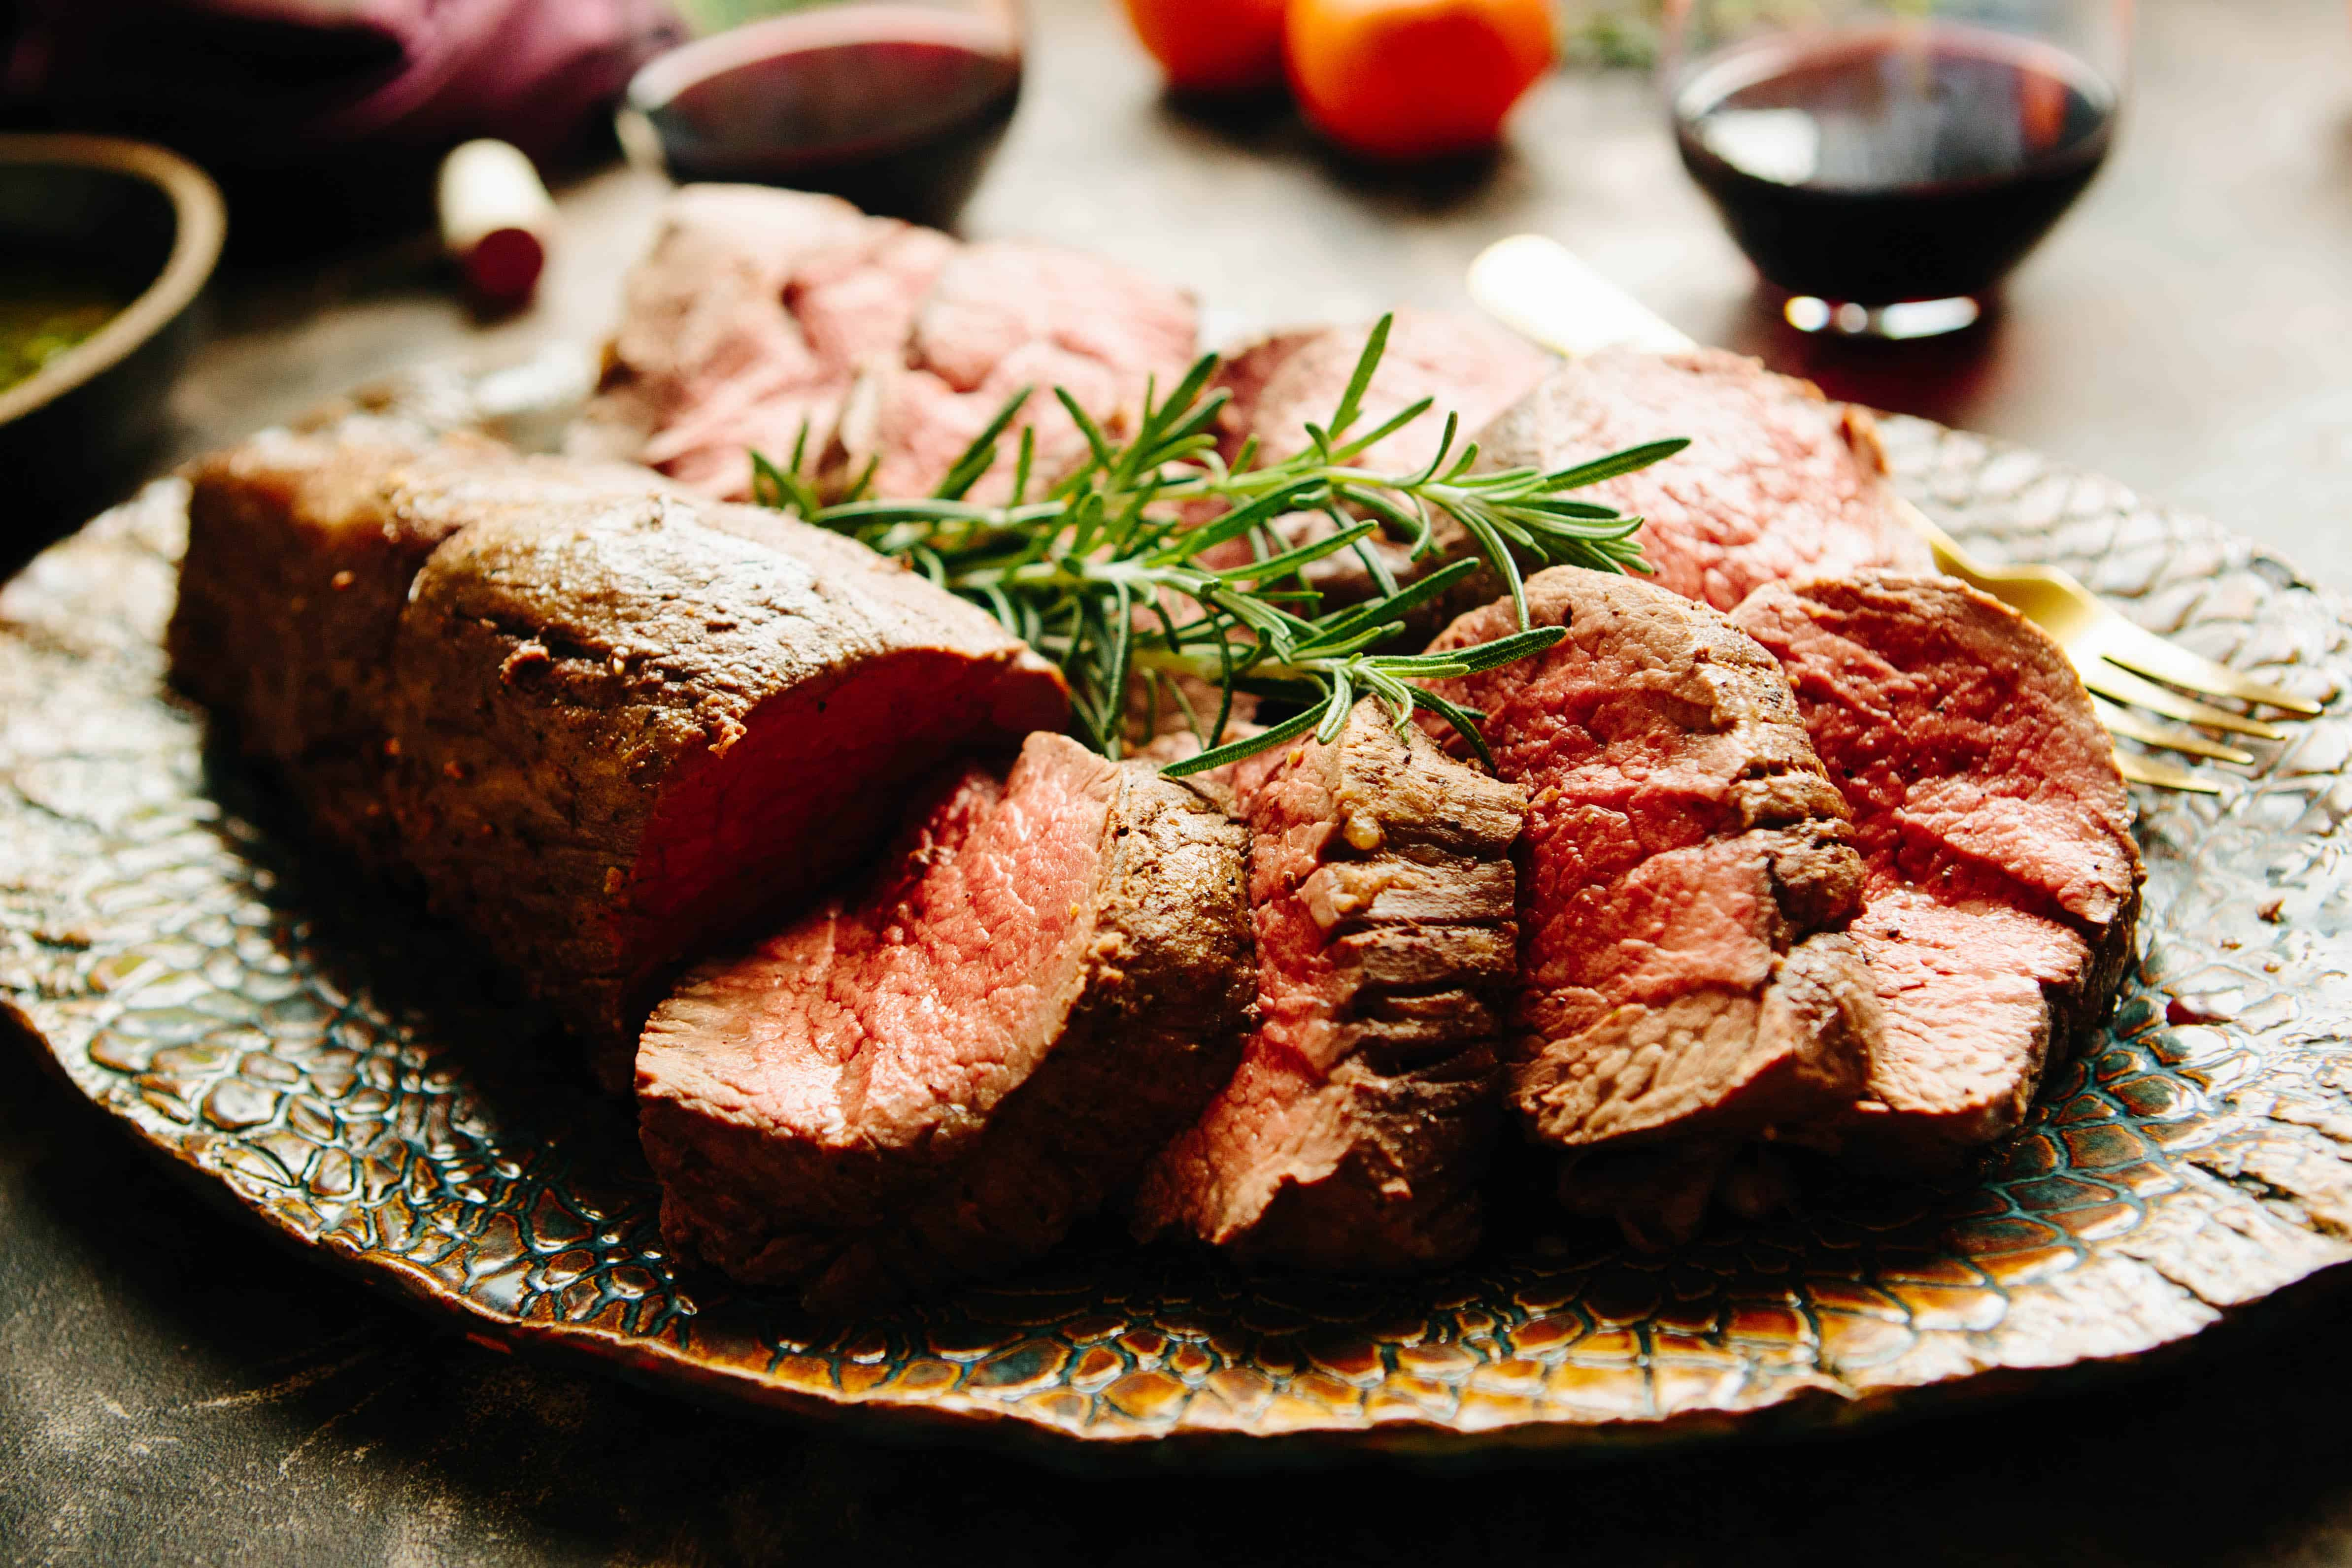 Whole Cow Meat Whole Roasted Beef Tenderloin Coley Cooks